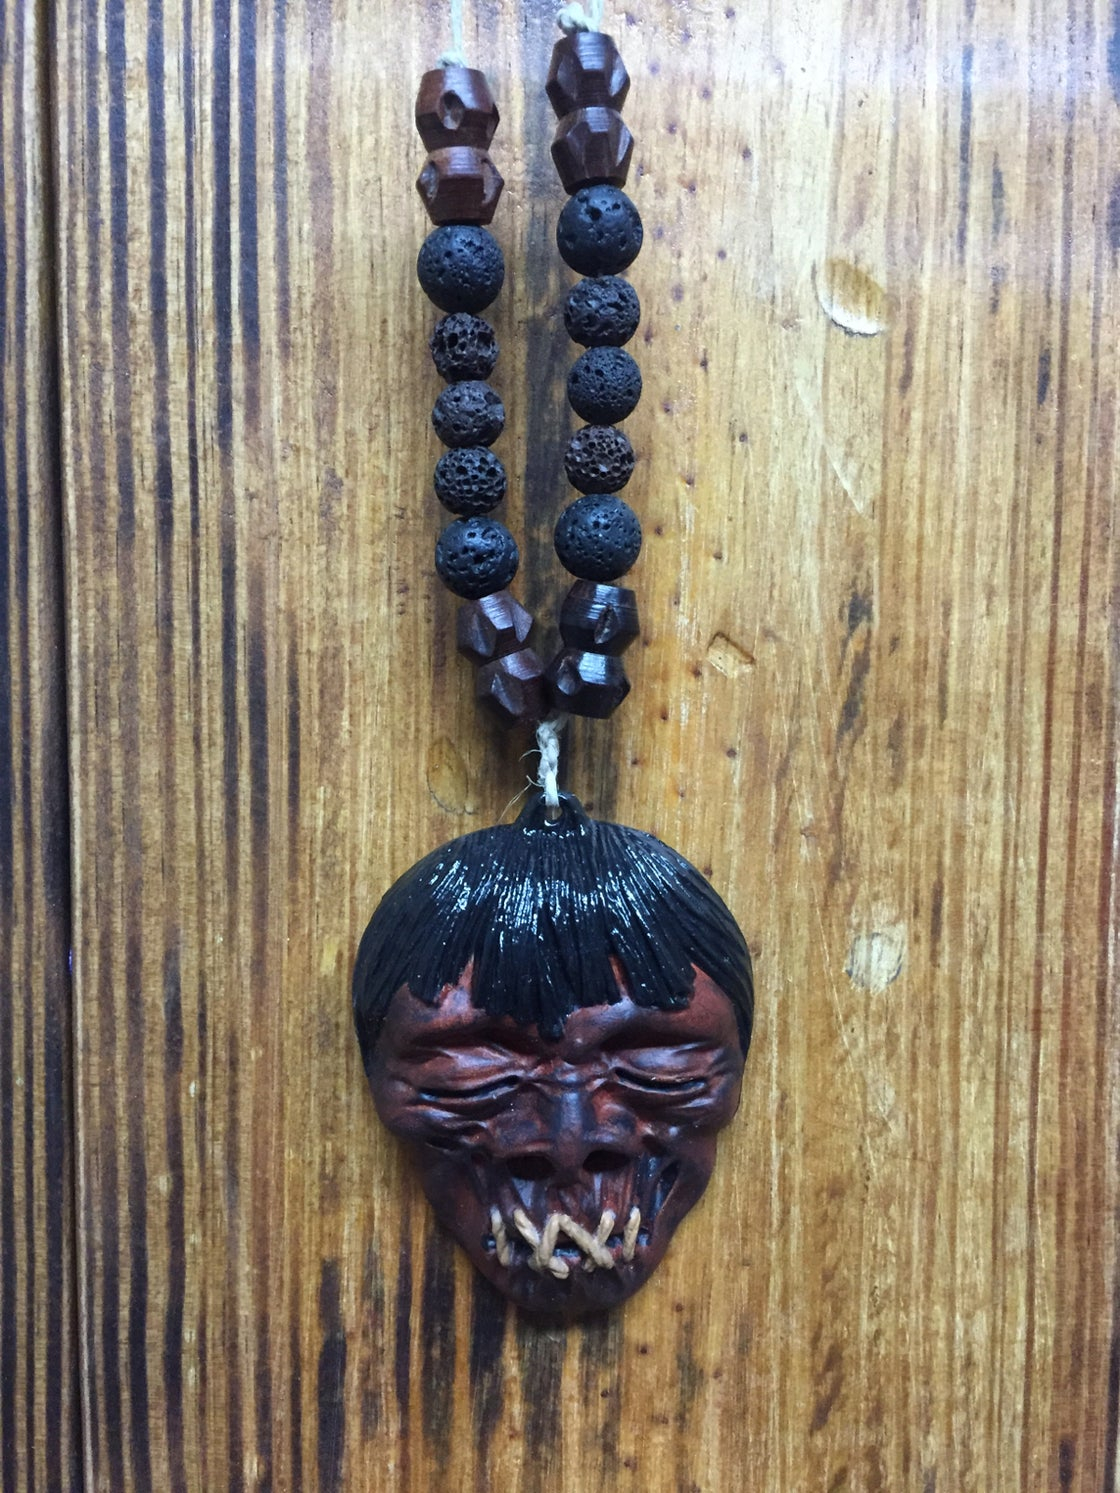 Image of Jivaro shrunken heads